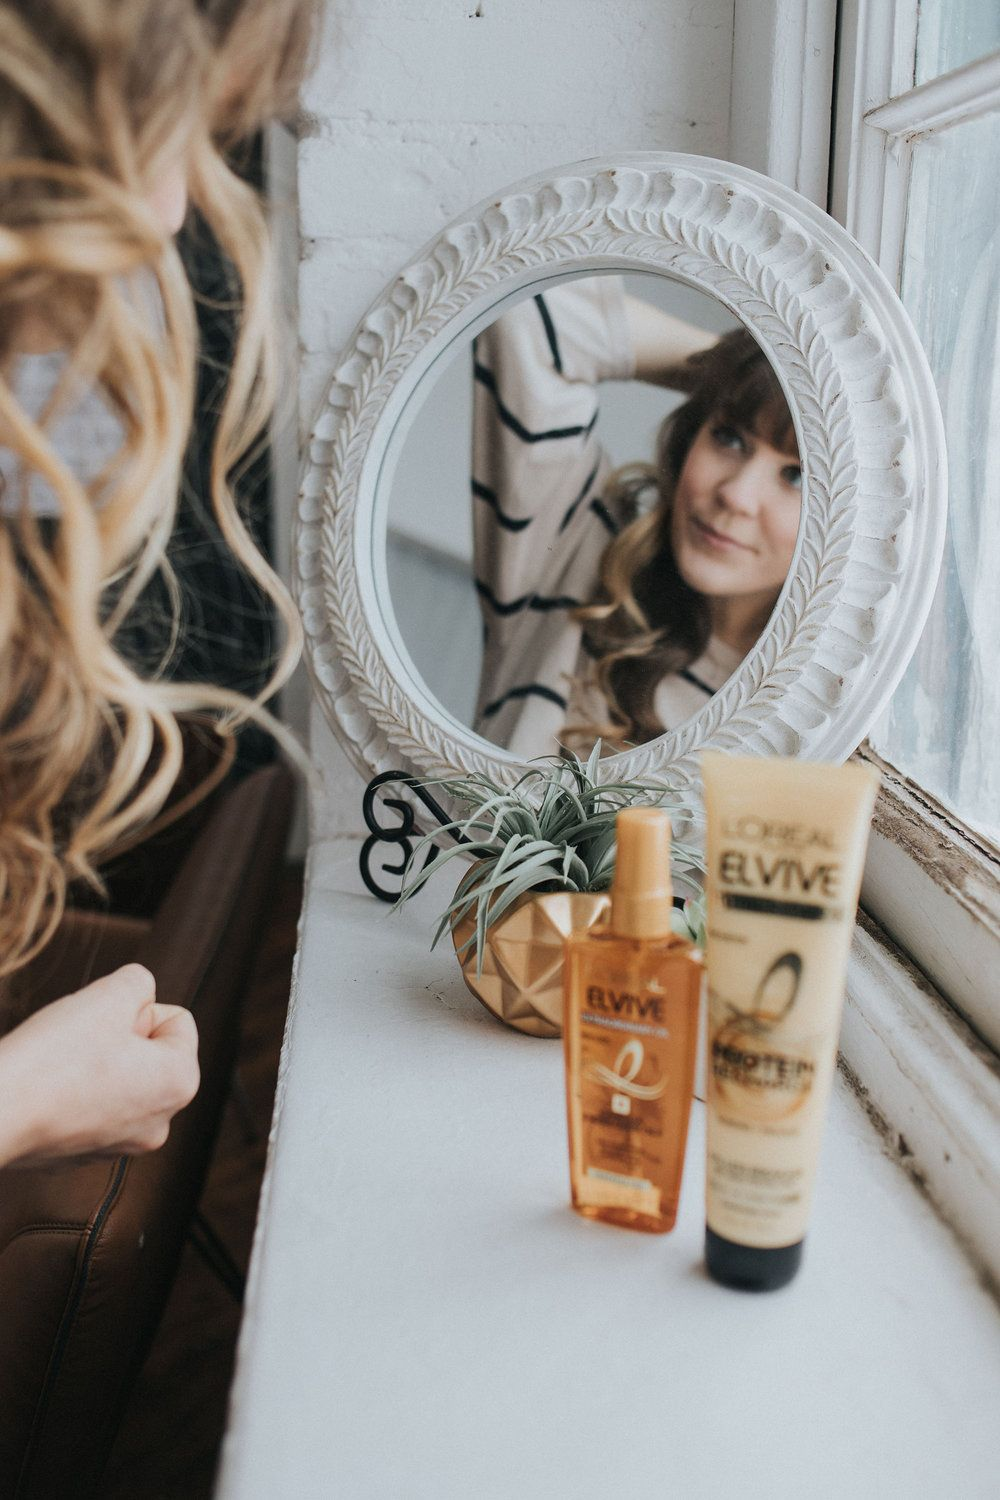 Achieving stronger and healthier hair with @LorealParis Elvive line #ad  http://bit.ly/2I3Cf5u  #ProofIn1Use